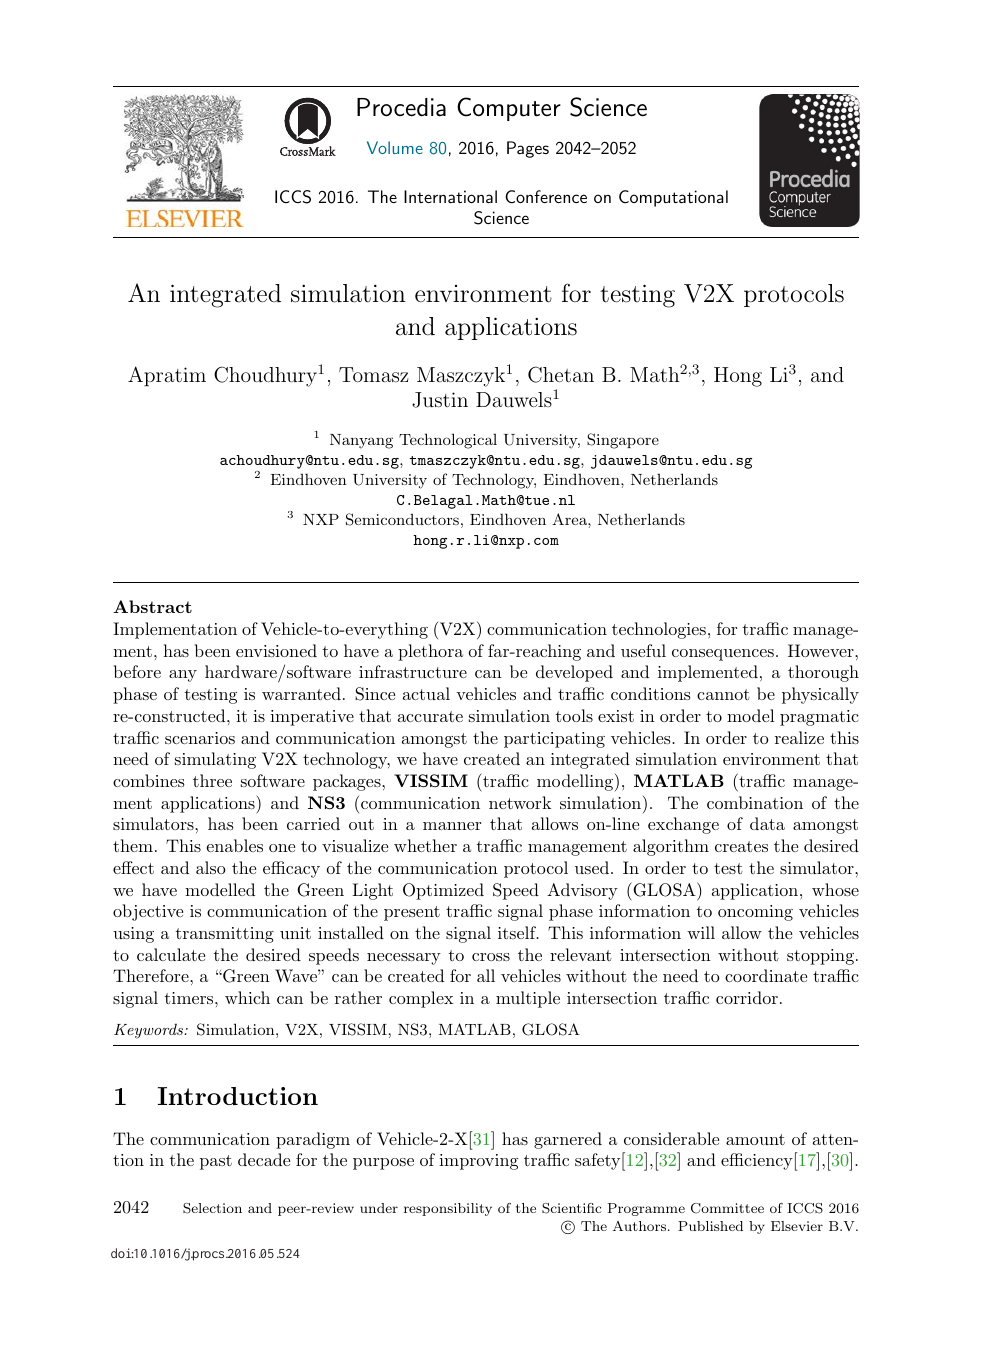 An Integrated Simulation Environment for Testing V2X